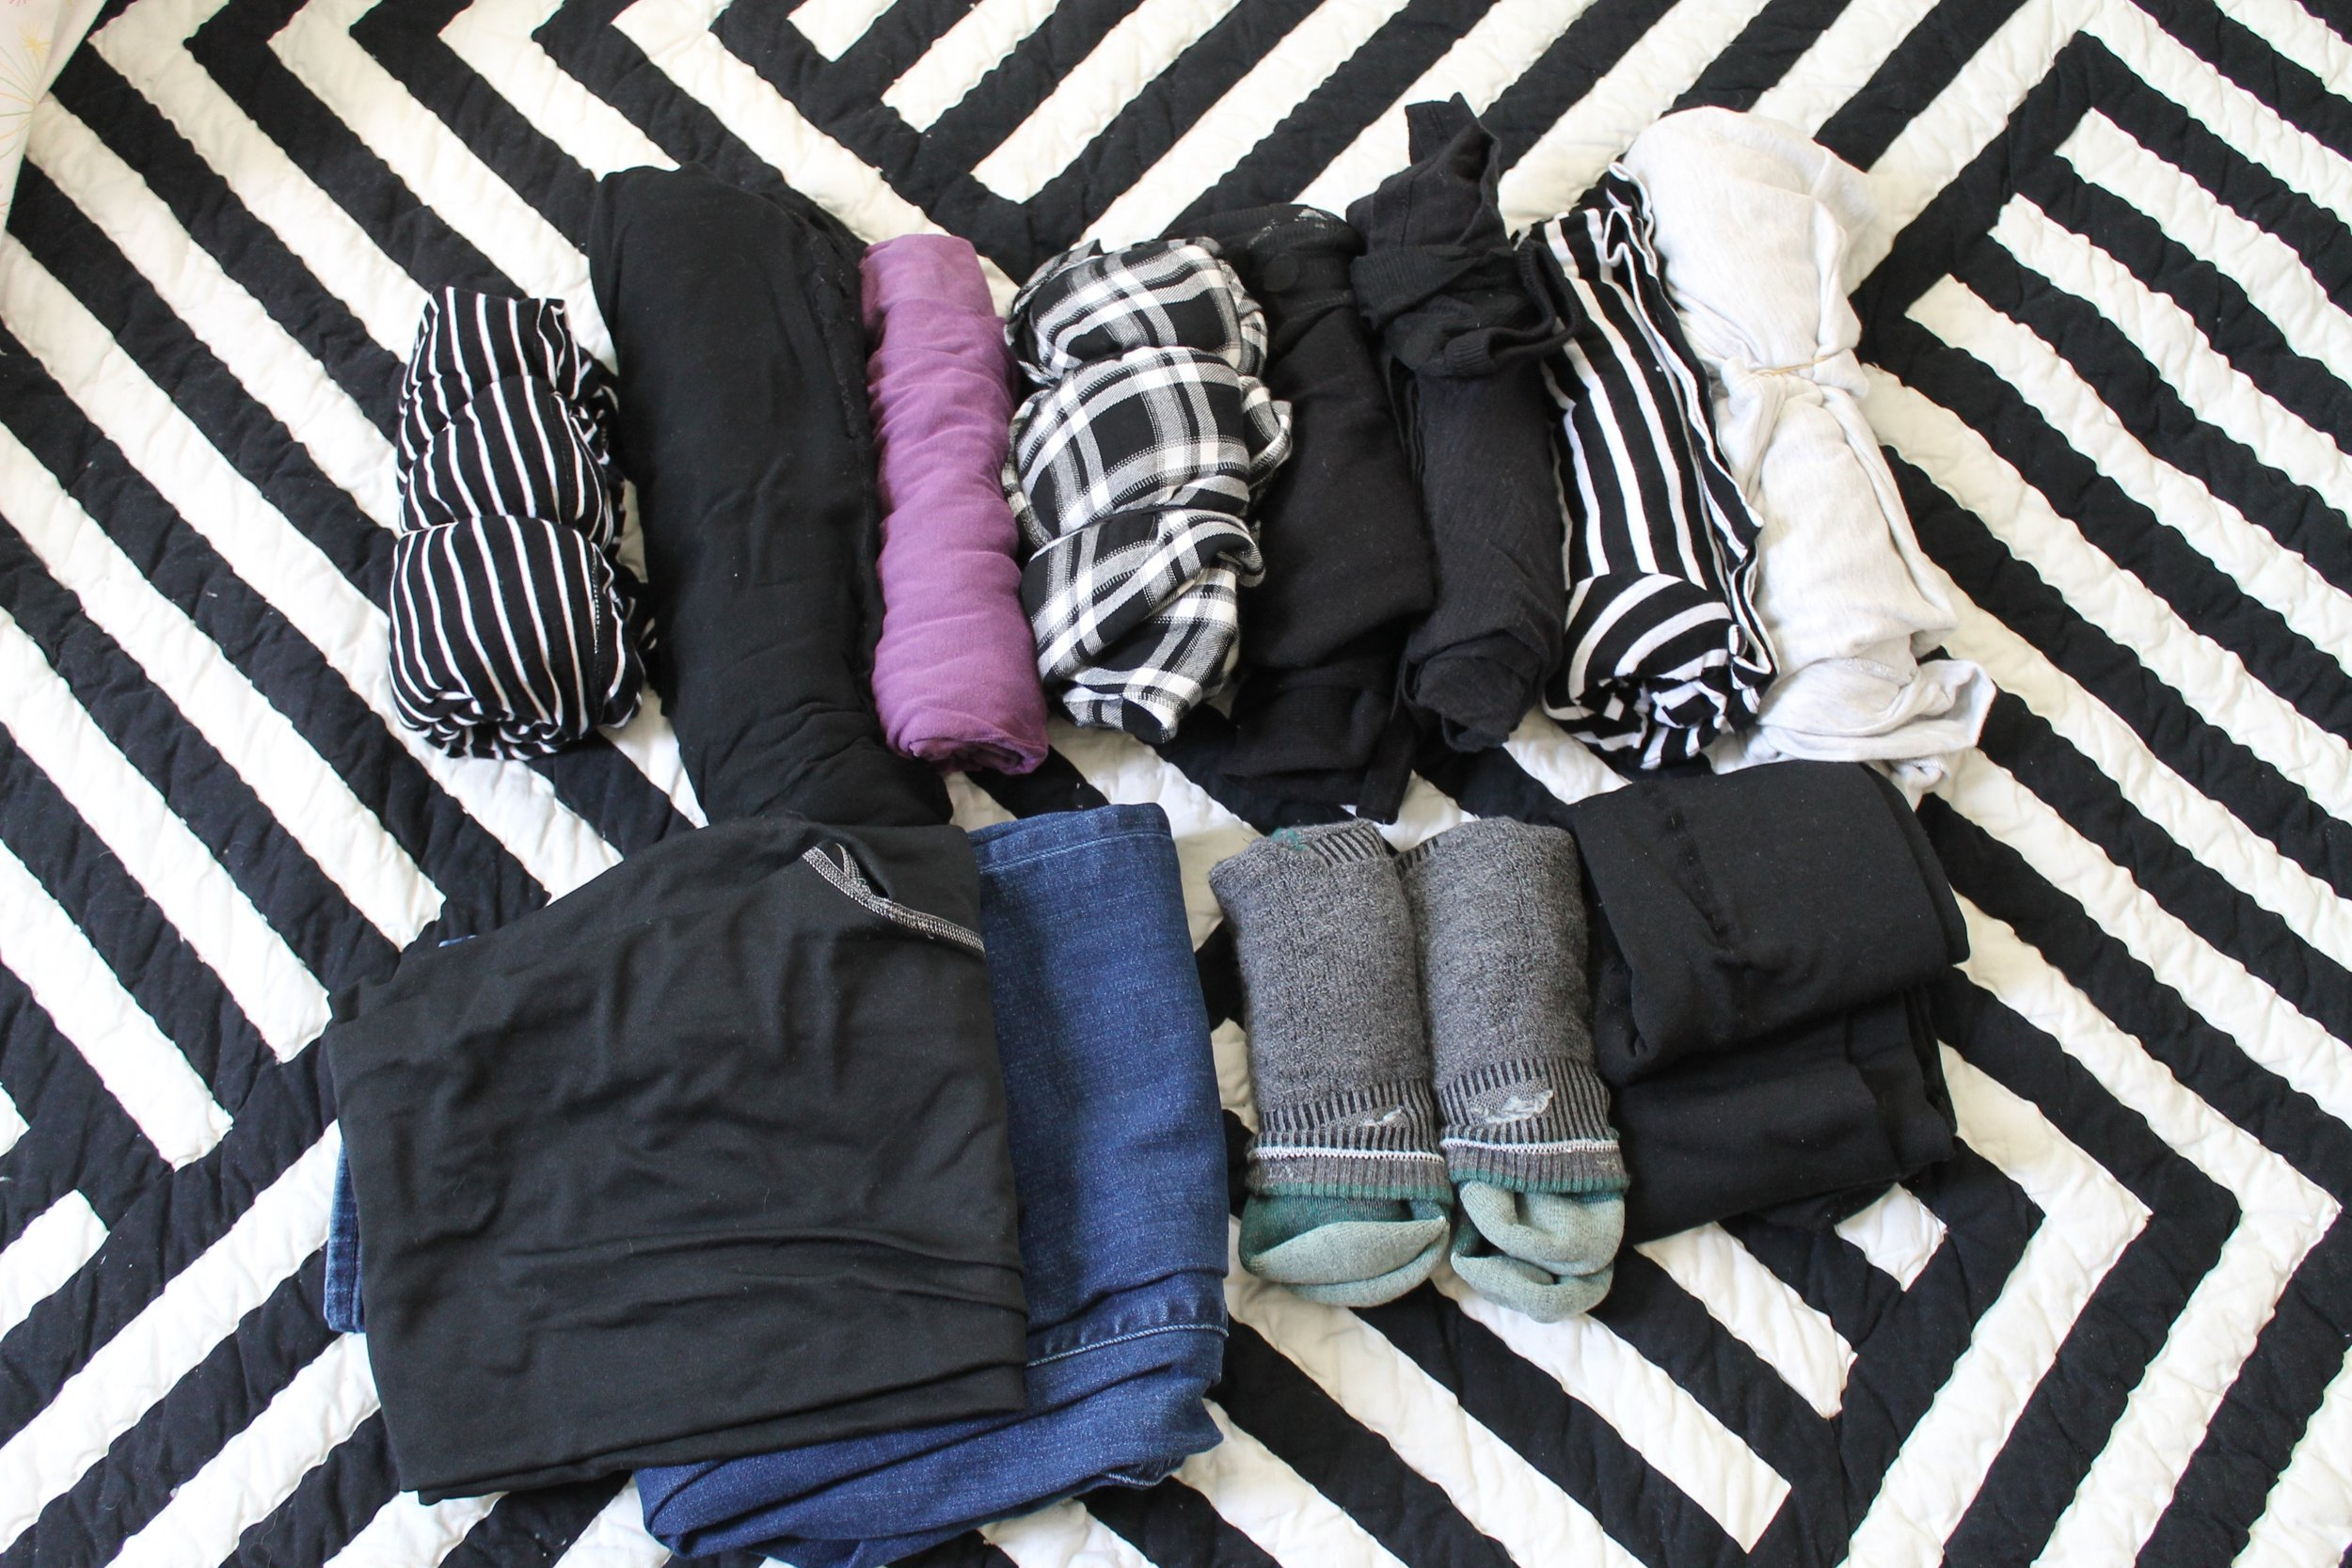 L-R: T-shirt dress, pj pants, pj shirt, long sleeved flannel, black sweater, black t-shirt, black and white striped long sleeve shirt, short sleeve shirt. Leggings, jeans, two pairs of socks, tights. Not pictured in this is the outfit I'll be wearing on the plane